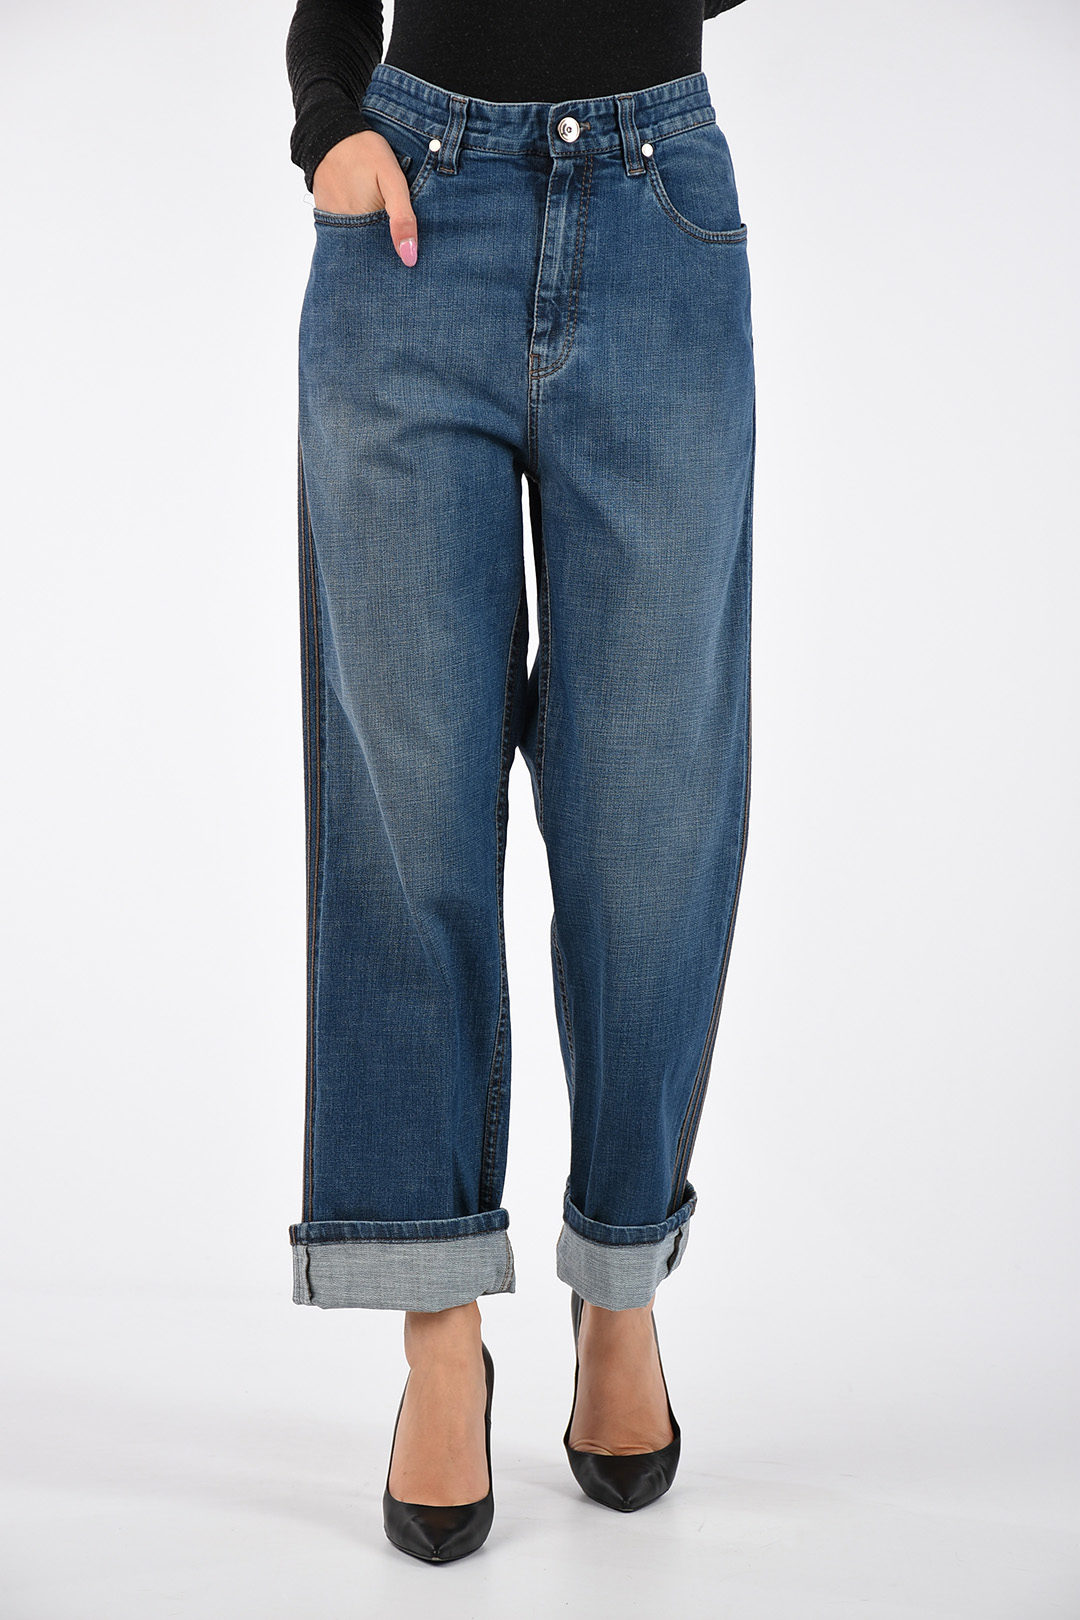 Loose Fit Women's Jeans / Discover our stylish loose fit jeans at asos.